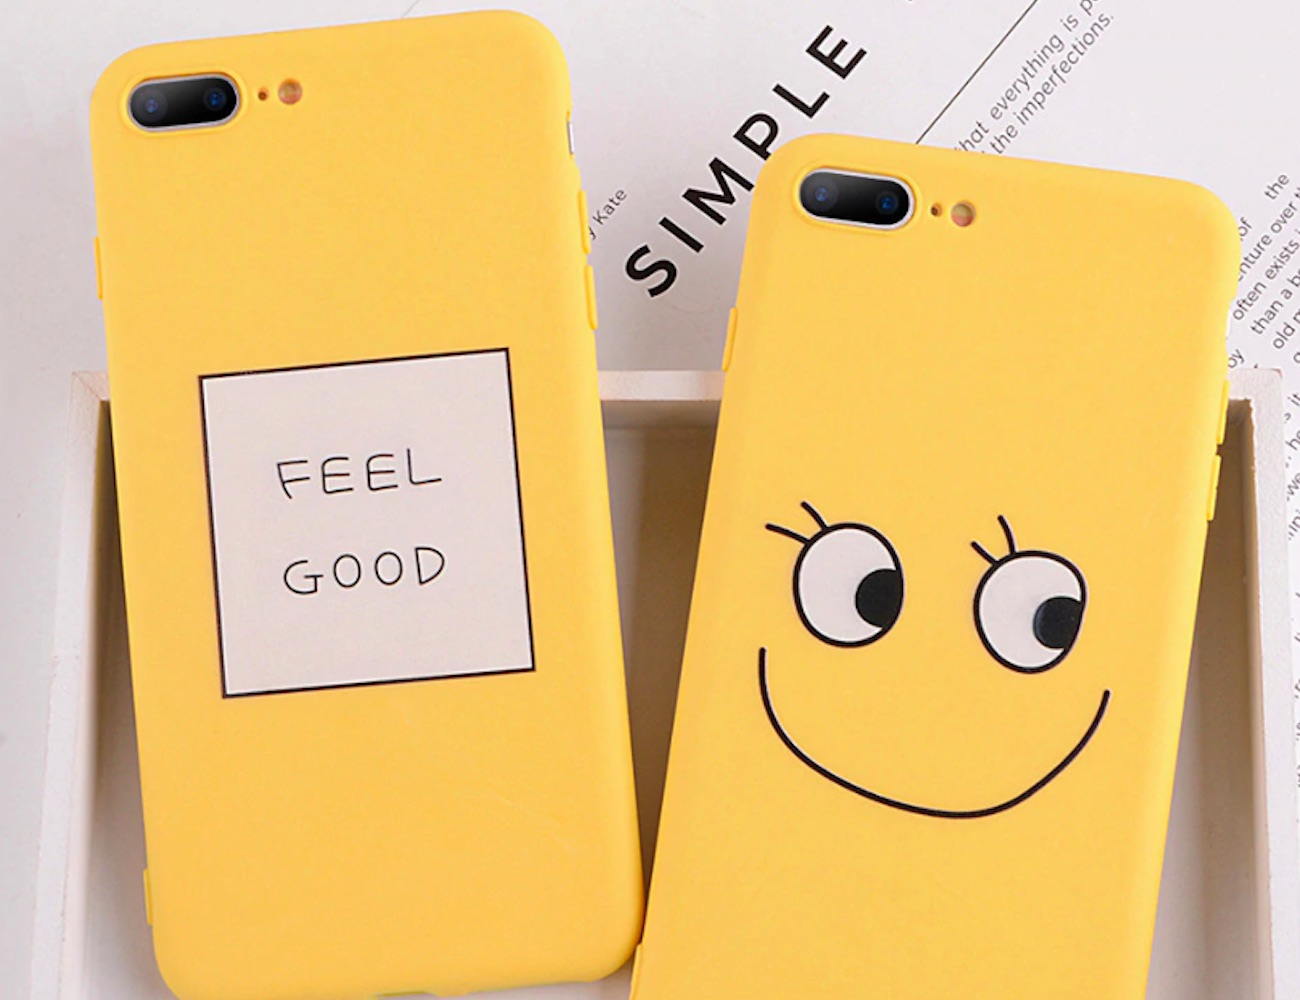 Uplifting Cartoon iPhone Case adds happiness to your every day